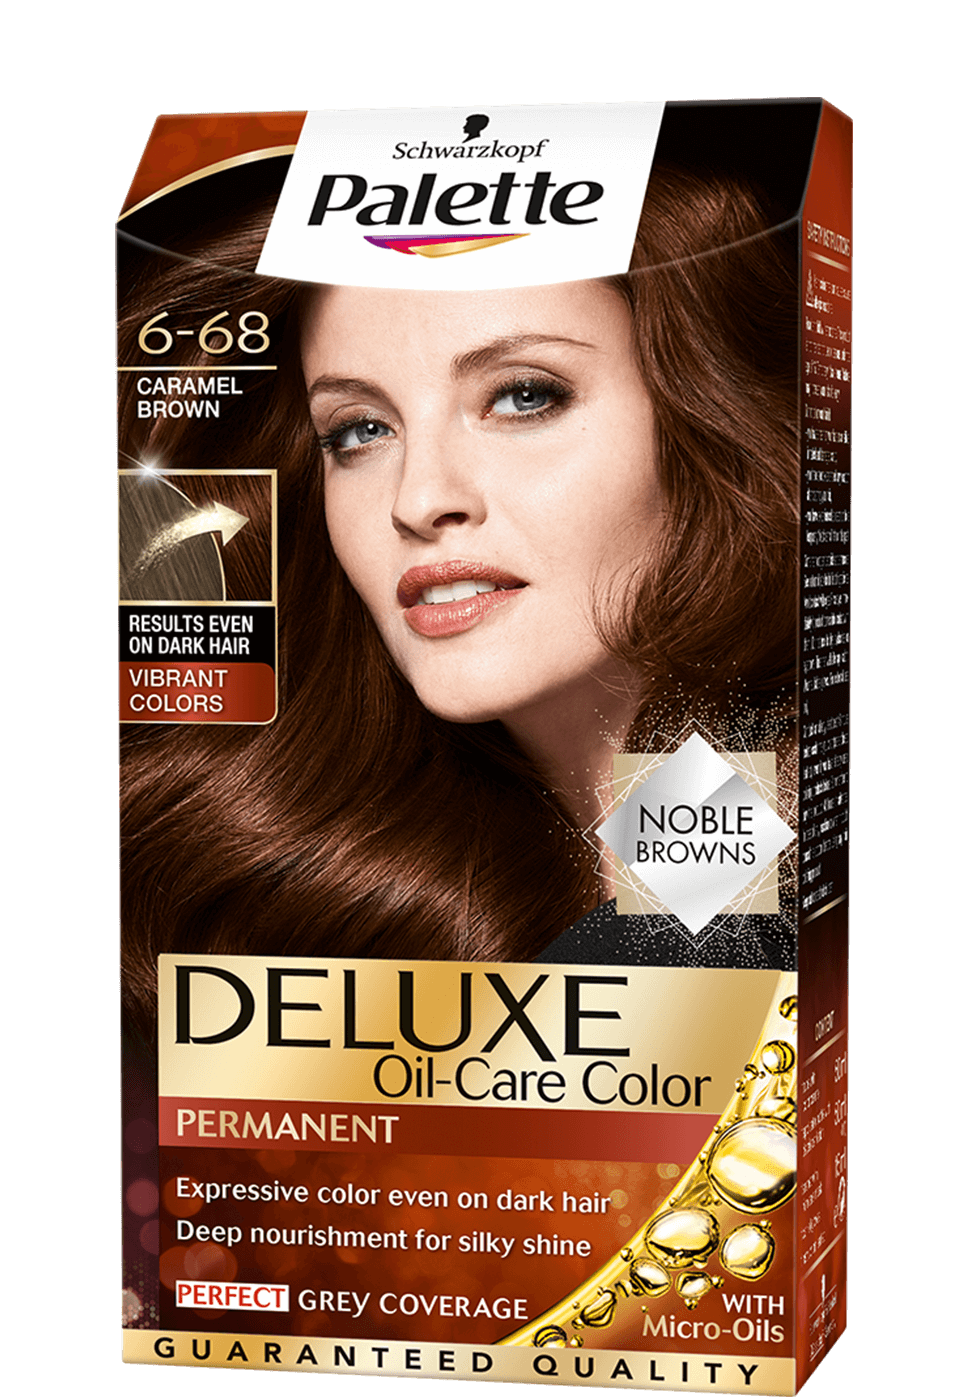 palette_com_deluxe_permanent_noble_browns_6_68_caramel_brown_970x1400